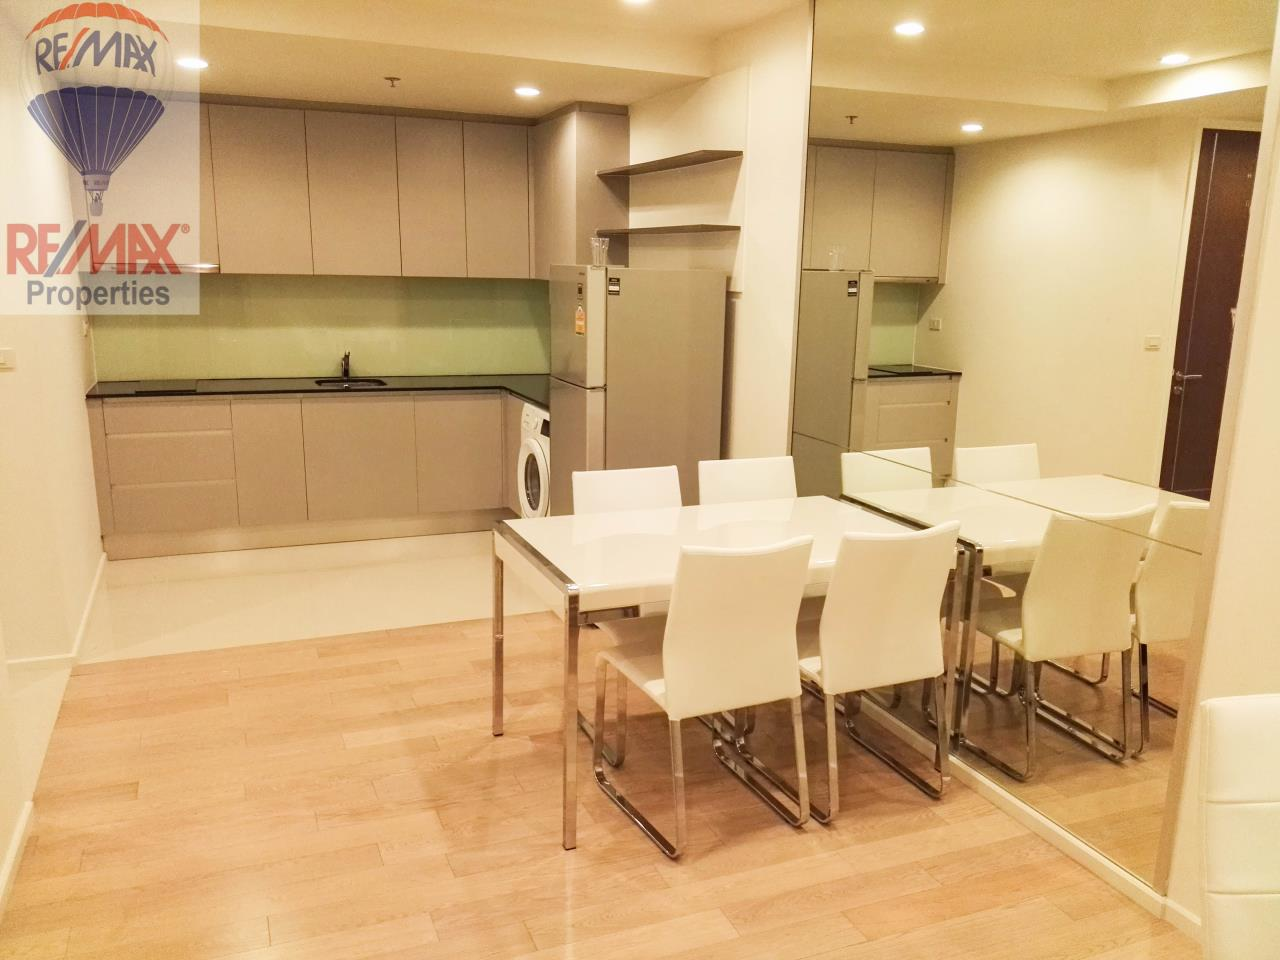 RE/MAX Properties Agency's 15 Sukhumvit Residence - 2 Bedrooms for rent 2